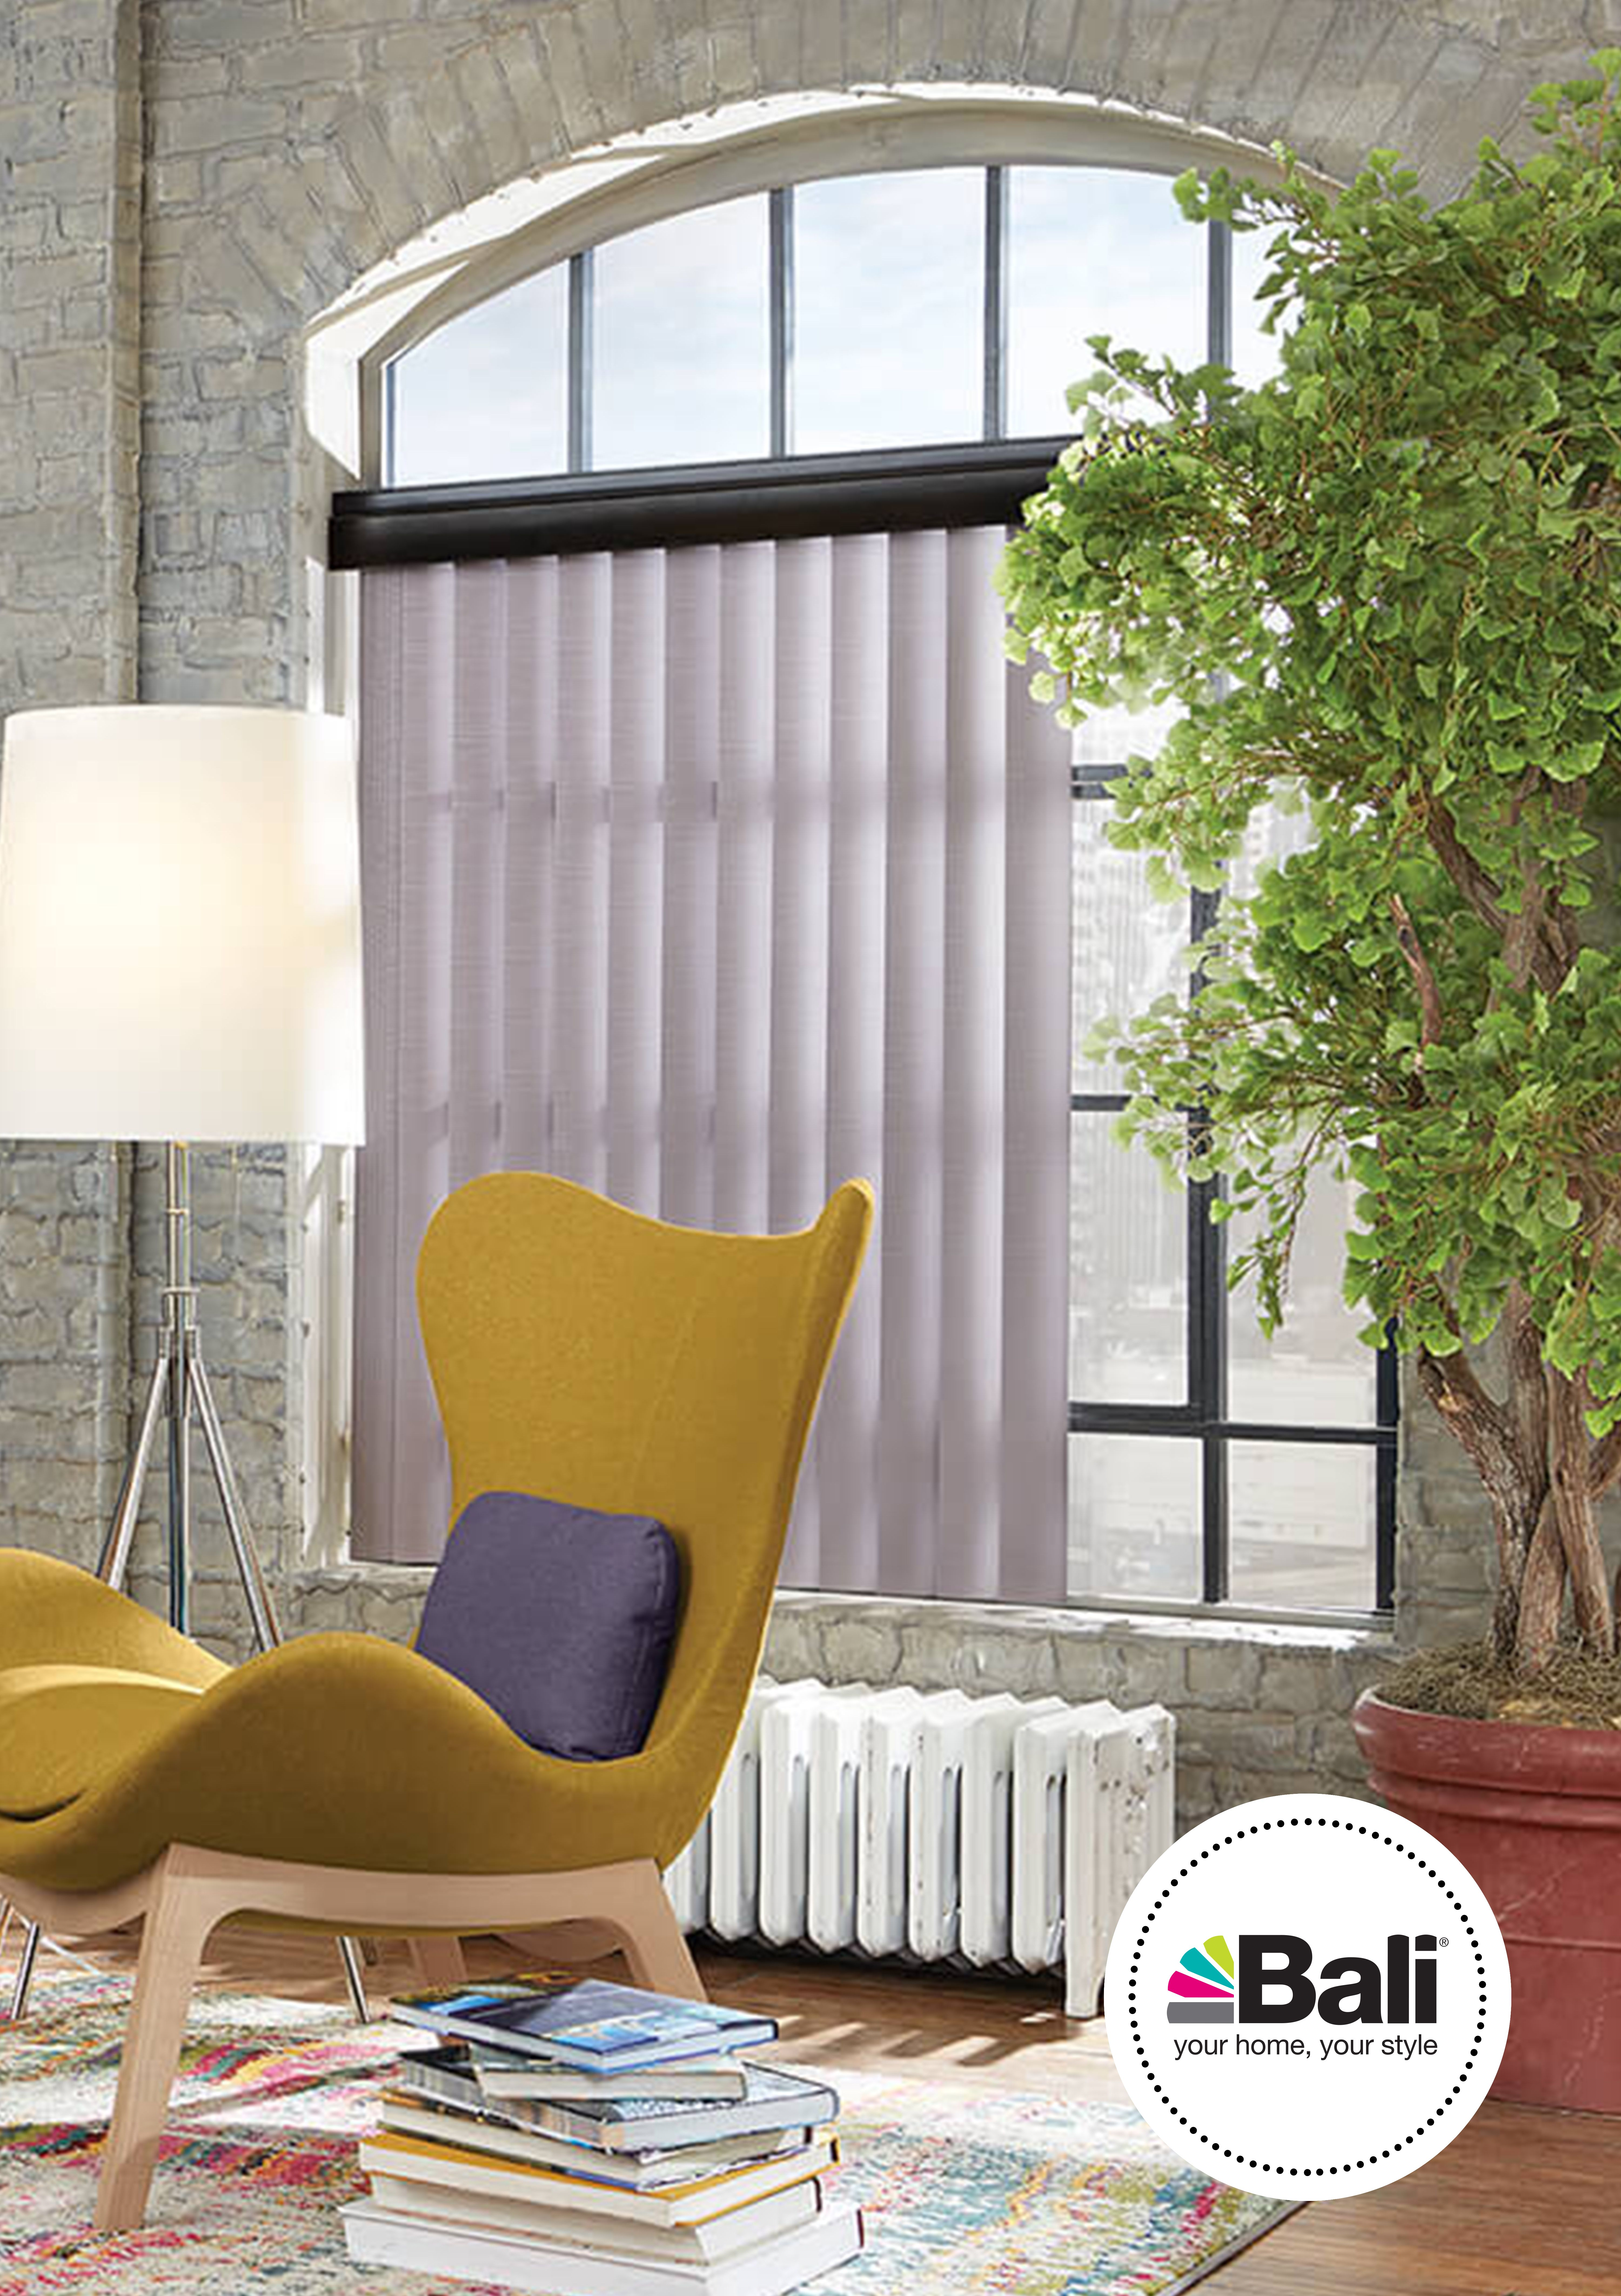 b blinds custom s at honeycomb lowe shades cellular and vertical bali shop